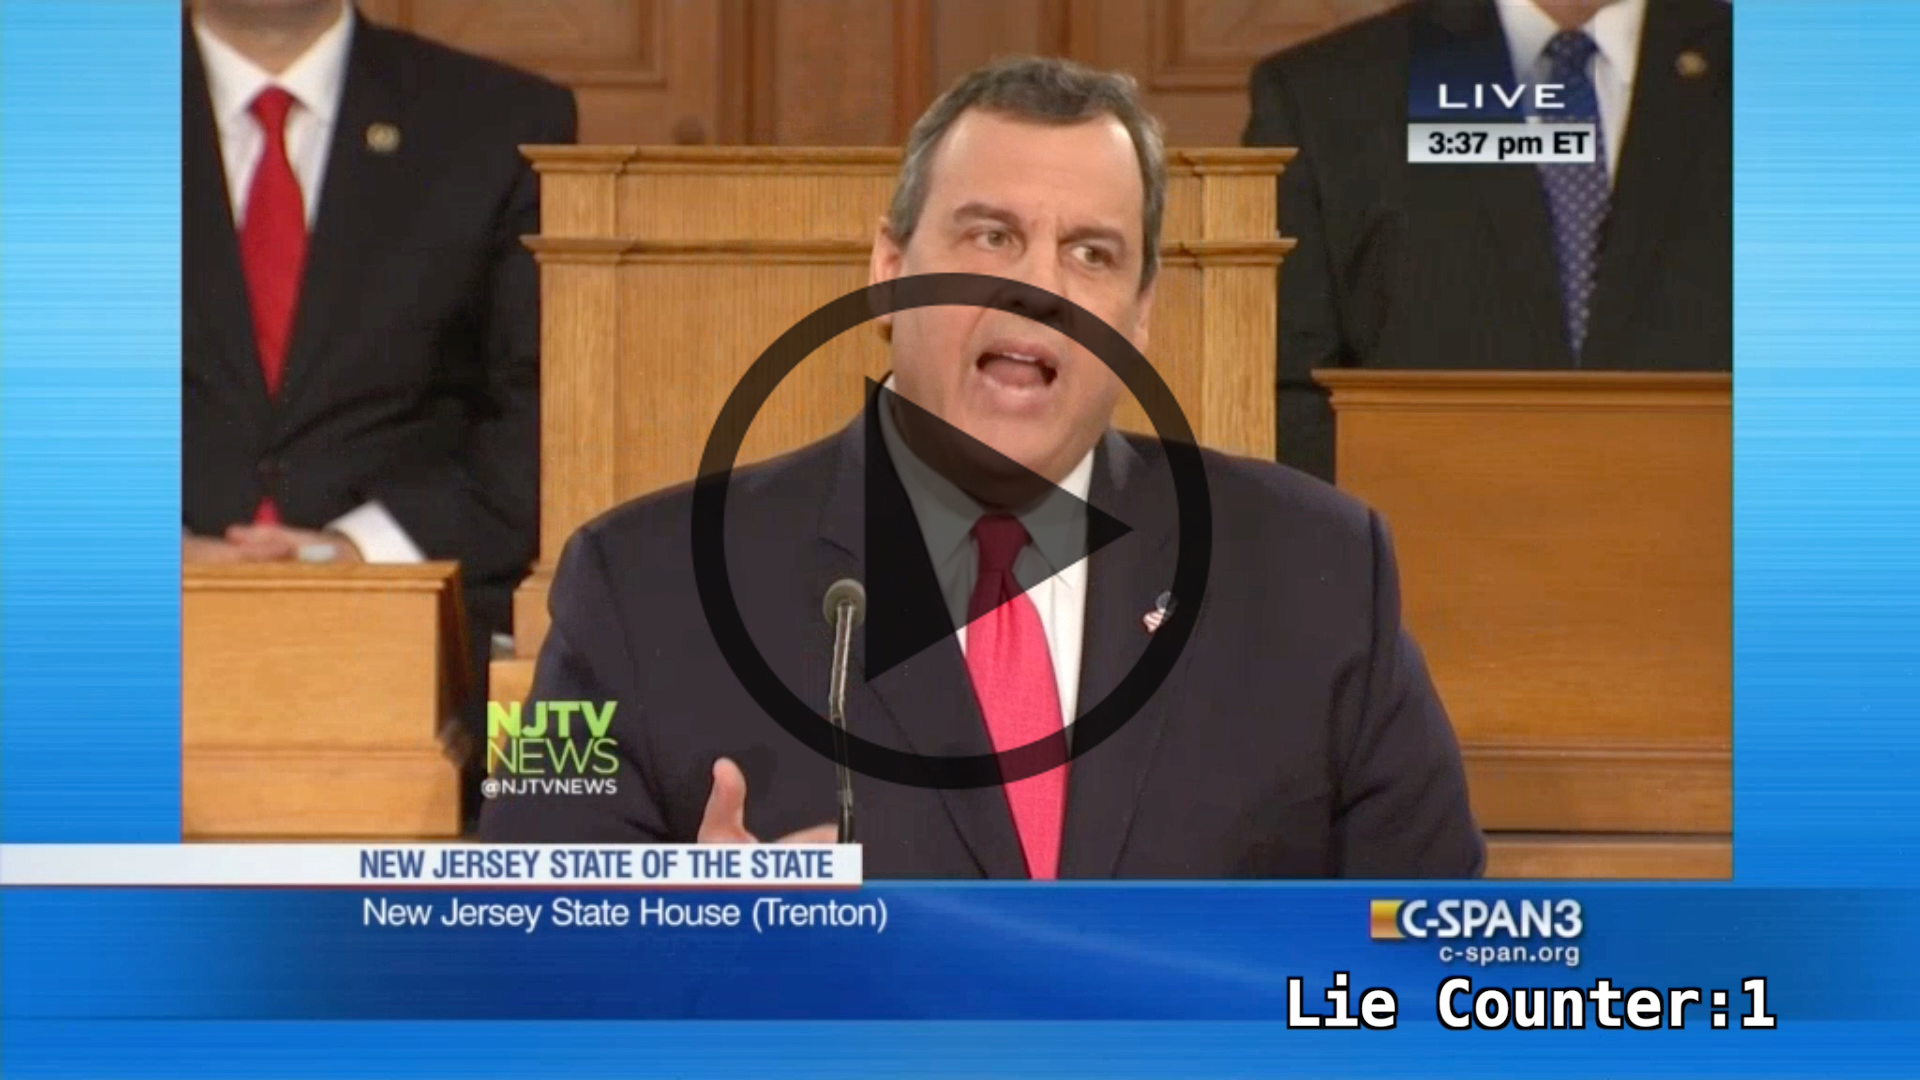 christie_with_play_button.png